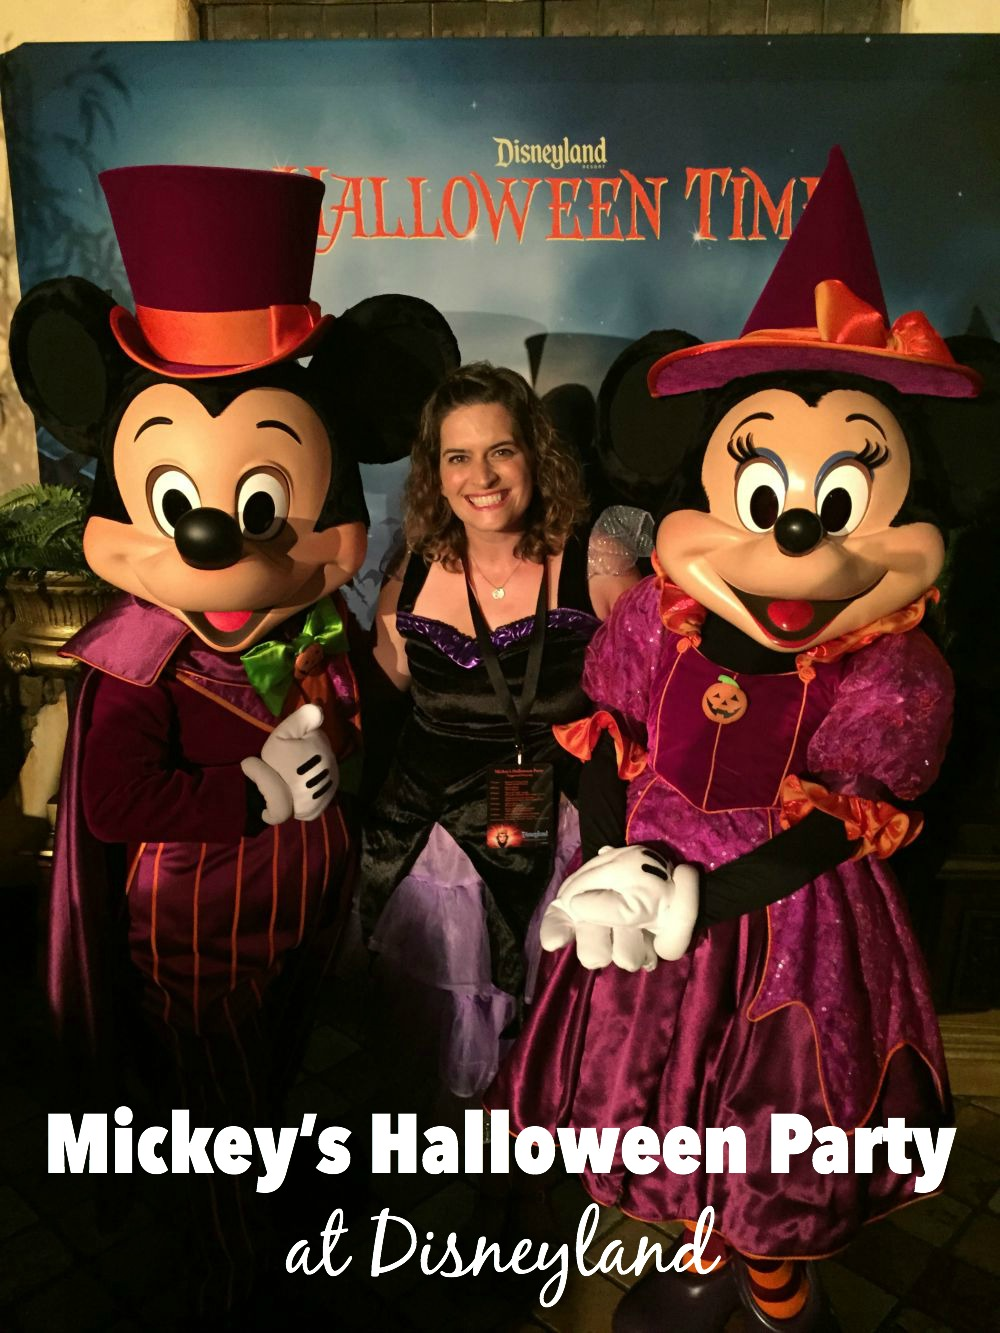 Headed to Disneyland for Halloween? Check out Mickey's Halloween Party at the Disneyland Resort.